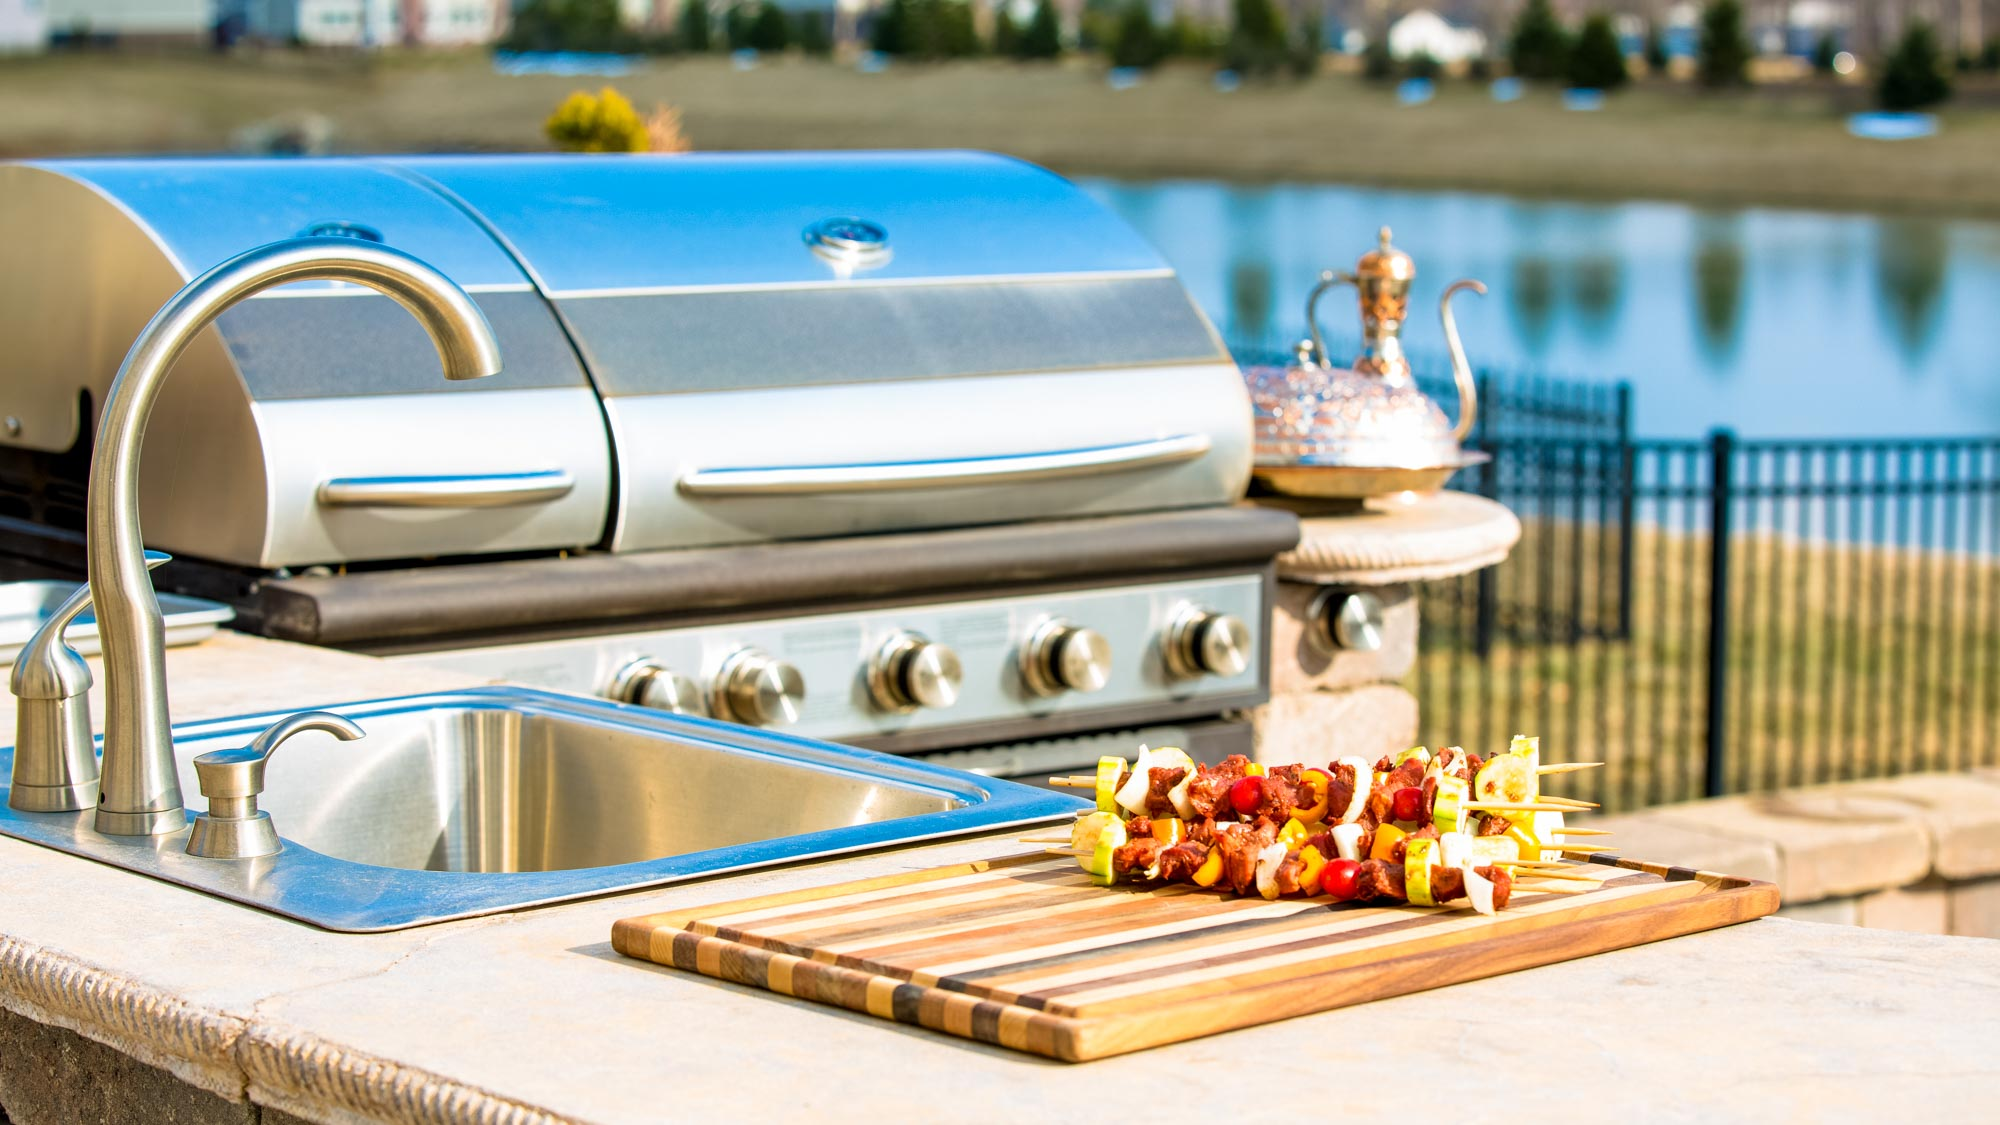 Outdoor Kitchens | Poolside Designs on Outdoor Kitchen With Pool Ideas id=22893